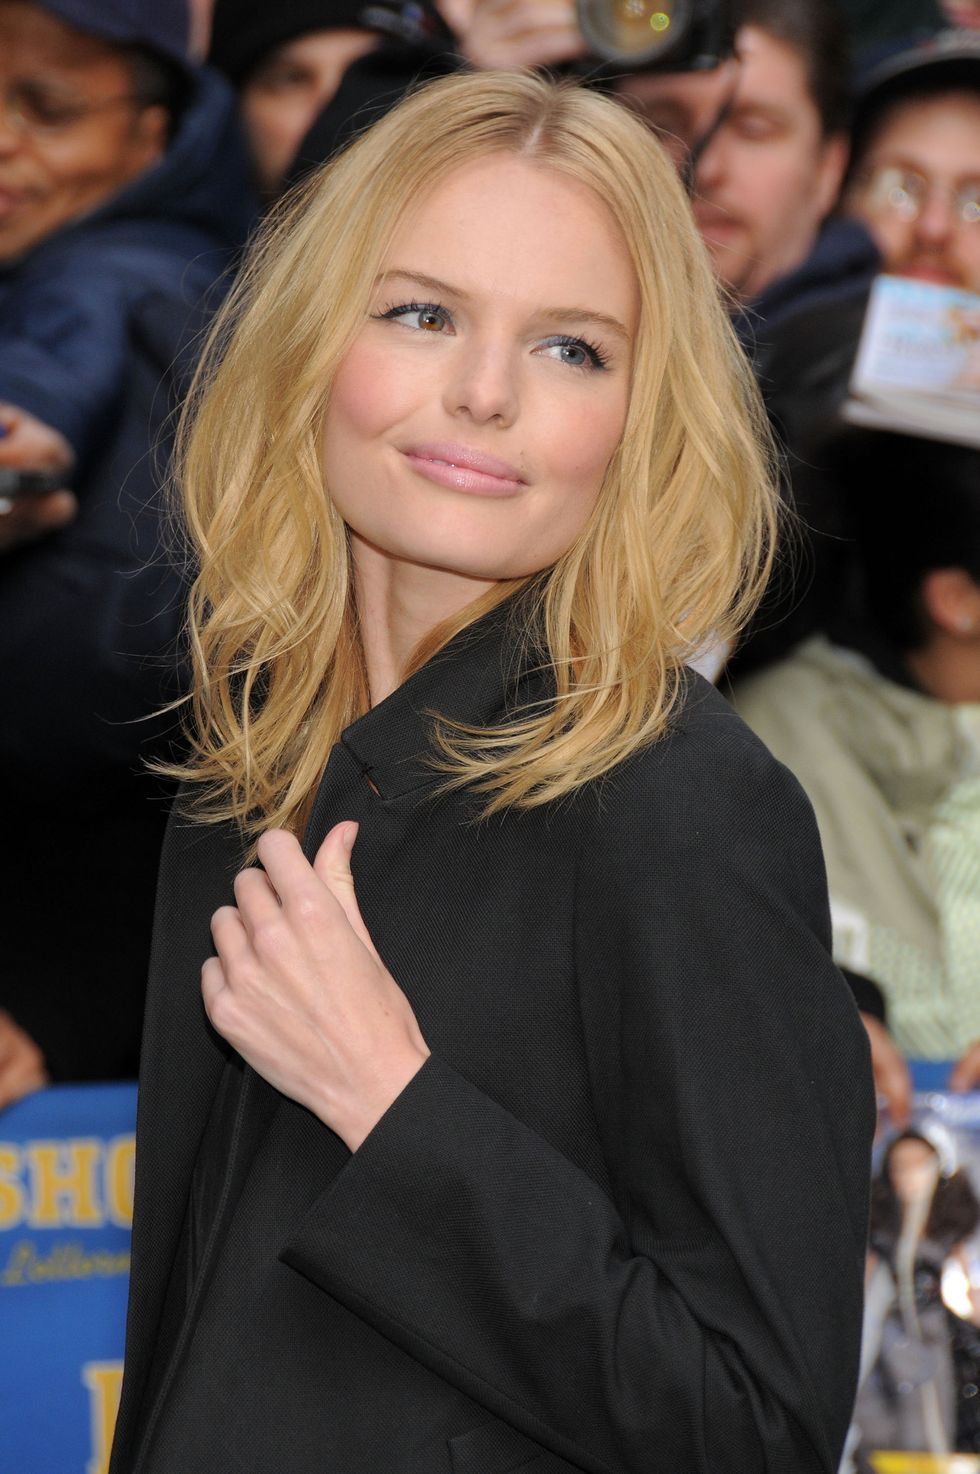 kate-bosworth-late-show-with-david-letterman-in-new-york-city-01